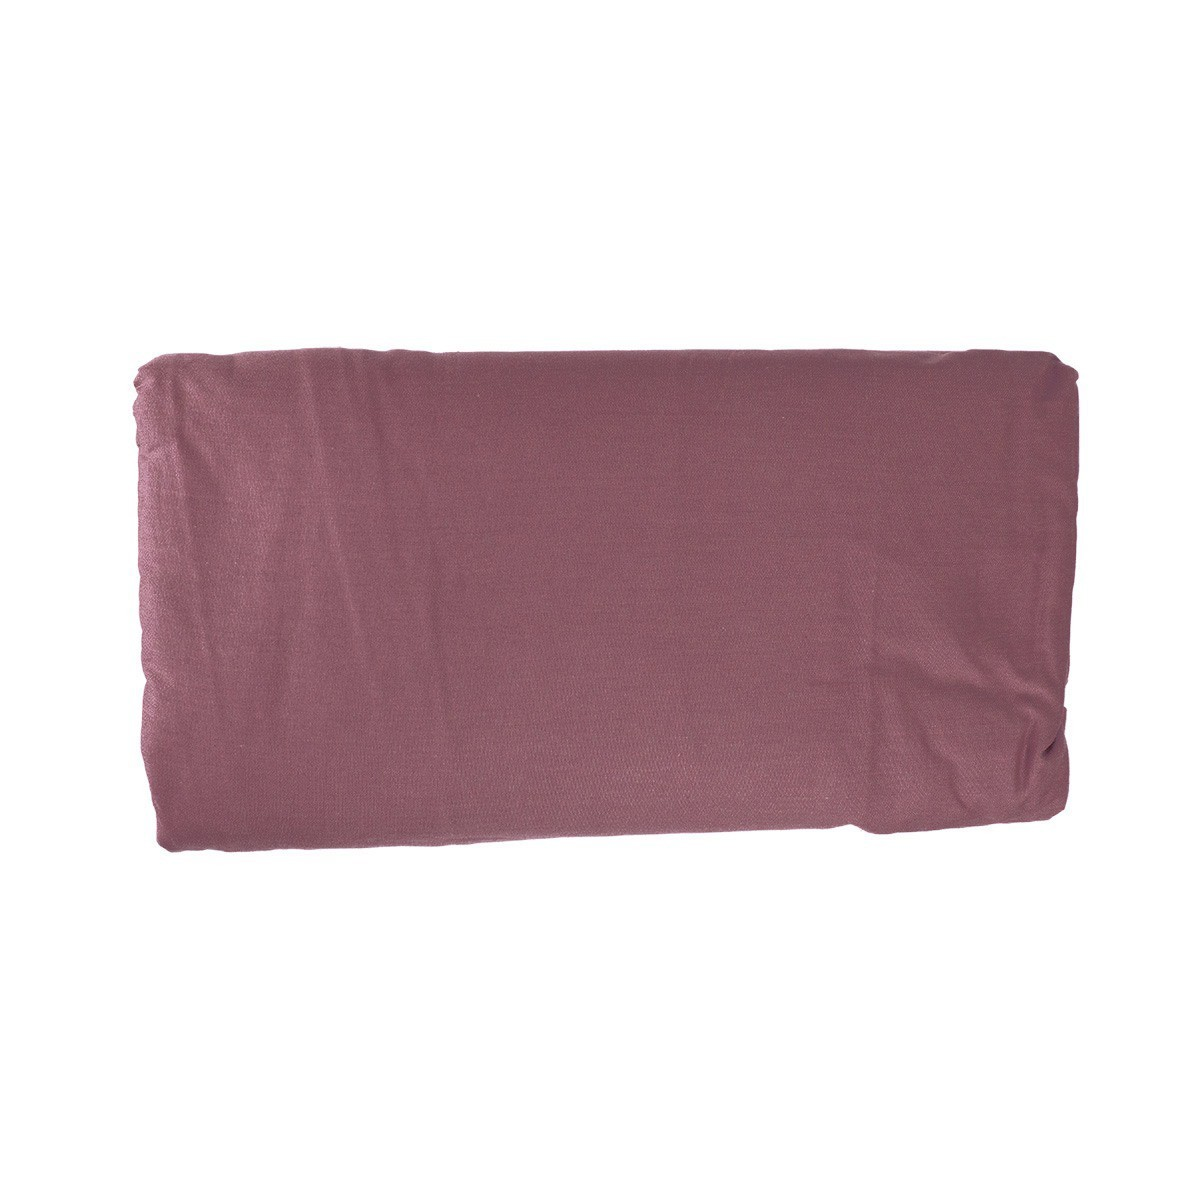 drap housse 90x190 percale 78 fils bonnet de 25cm violet. Black Bedroom Furniture Sets. Home Design Ideas